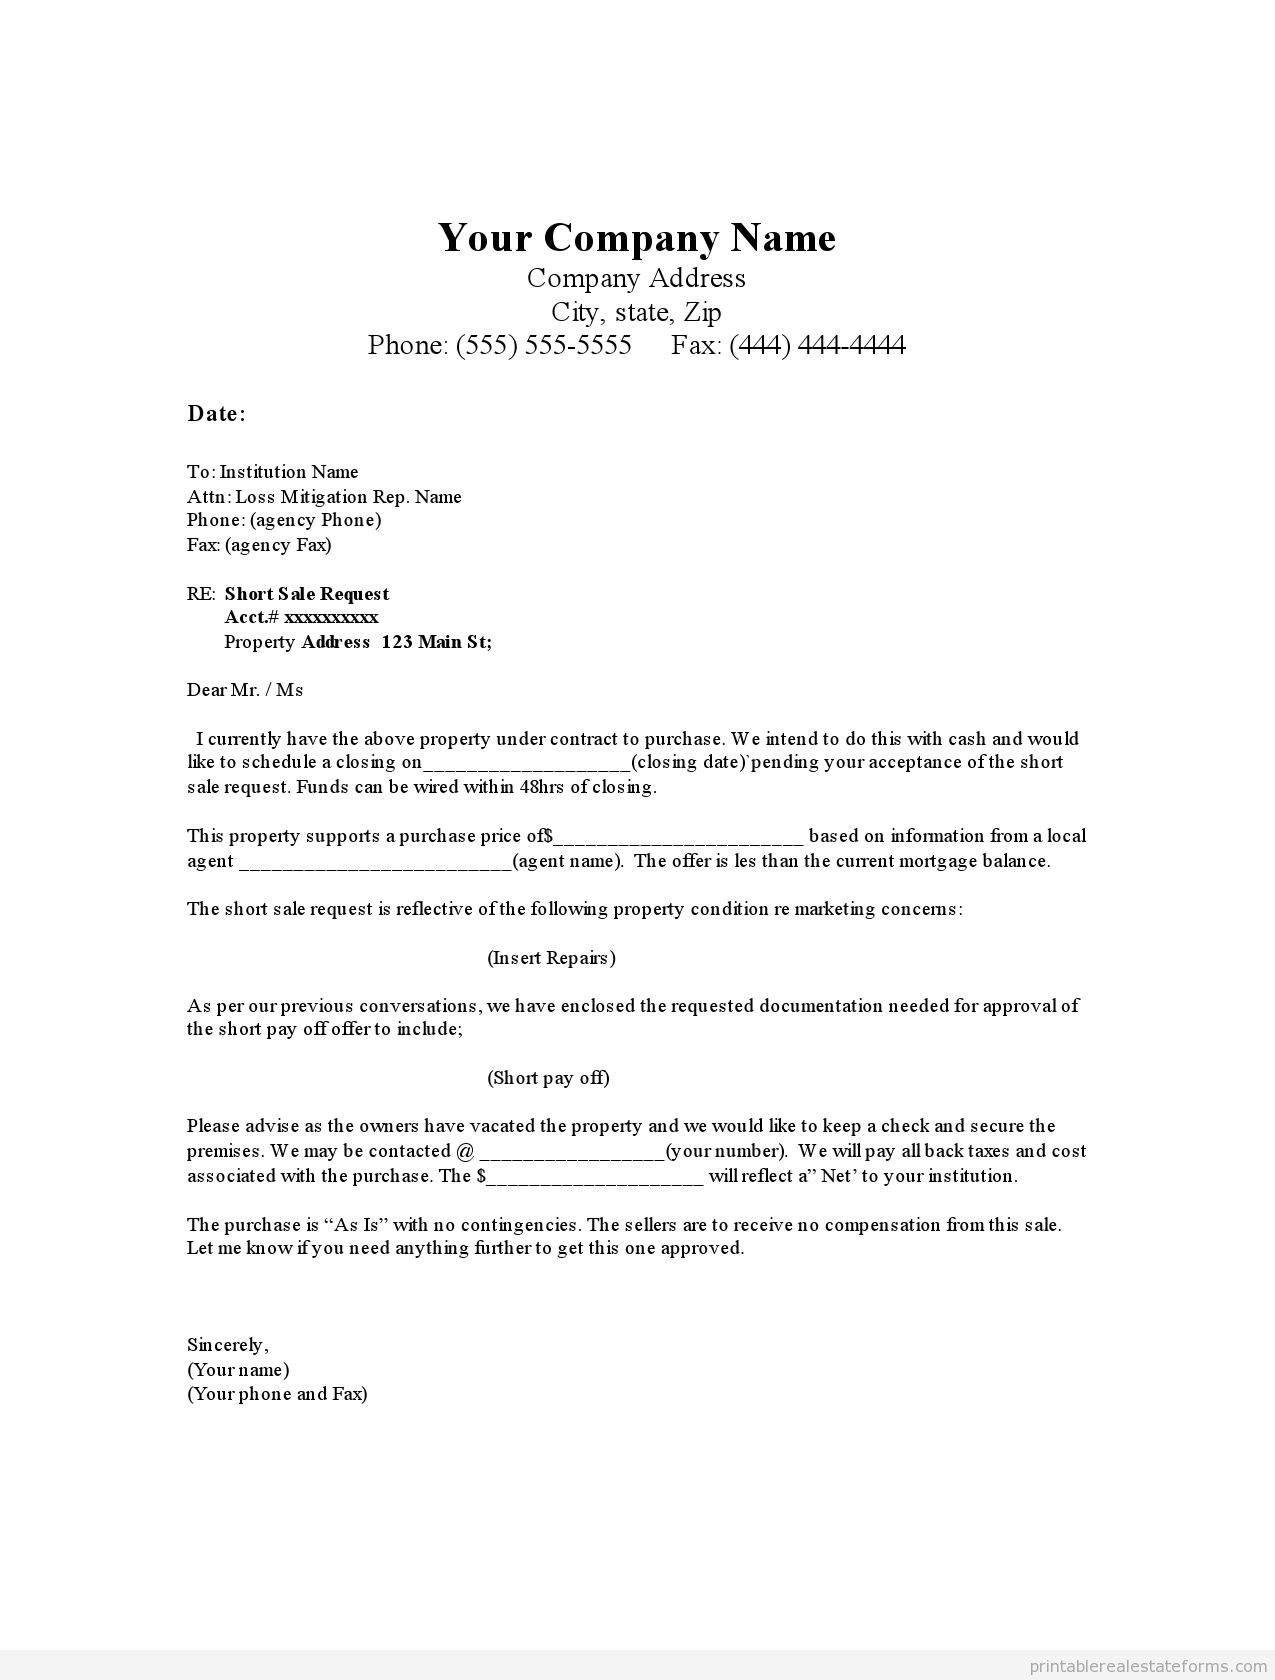 for sale by owner offer letter template example-Home Fer Letter Template Home fer Letter Sample Ideas 16-a